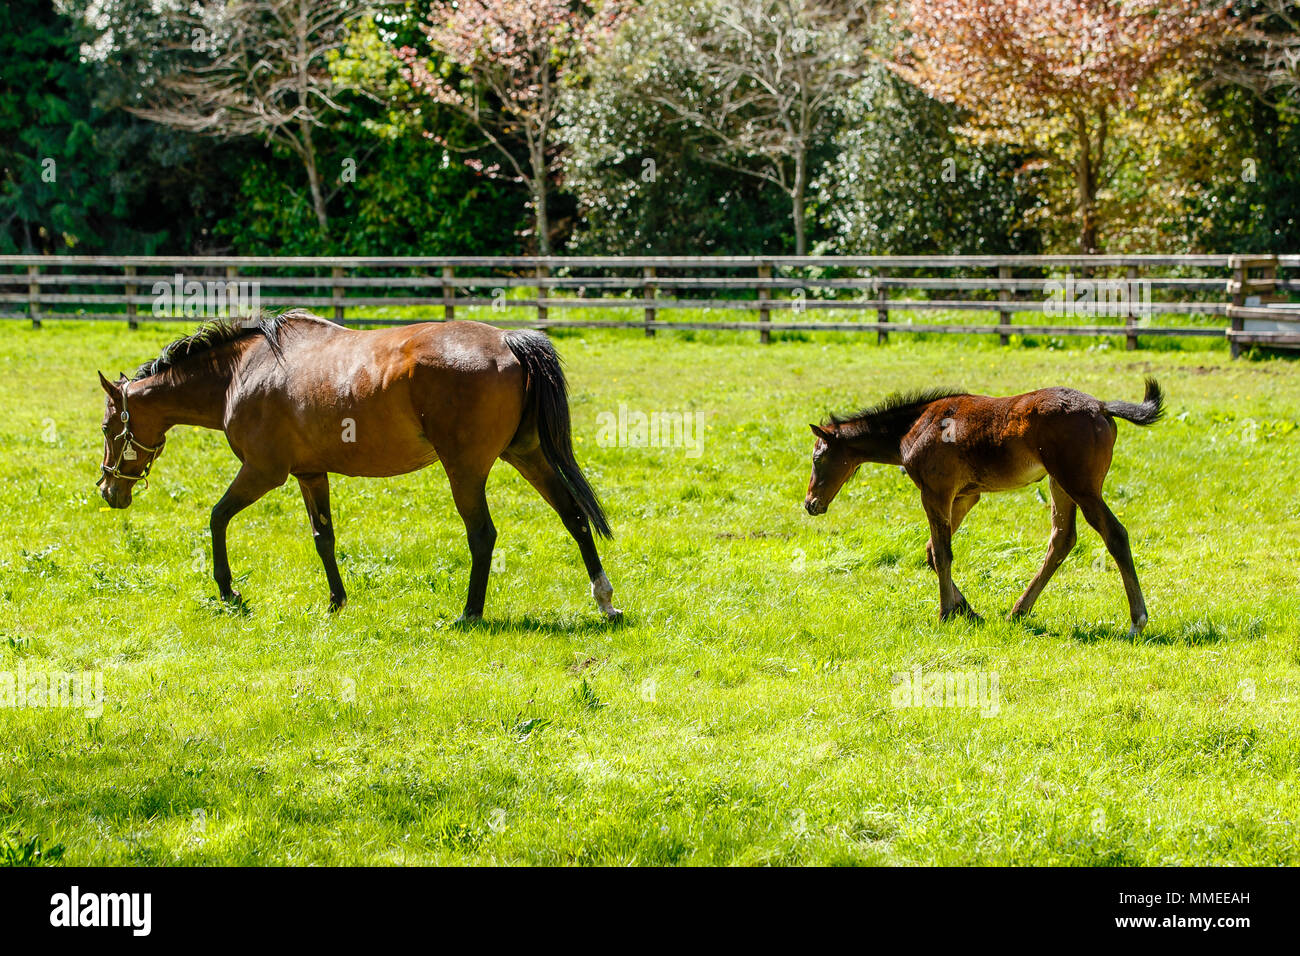 Thoroughbred brood mare with foal grazing in a pasture at the Palmerstown House Estate, County Kildare Ireland. - Stock Image